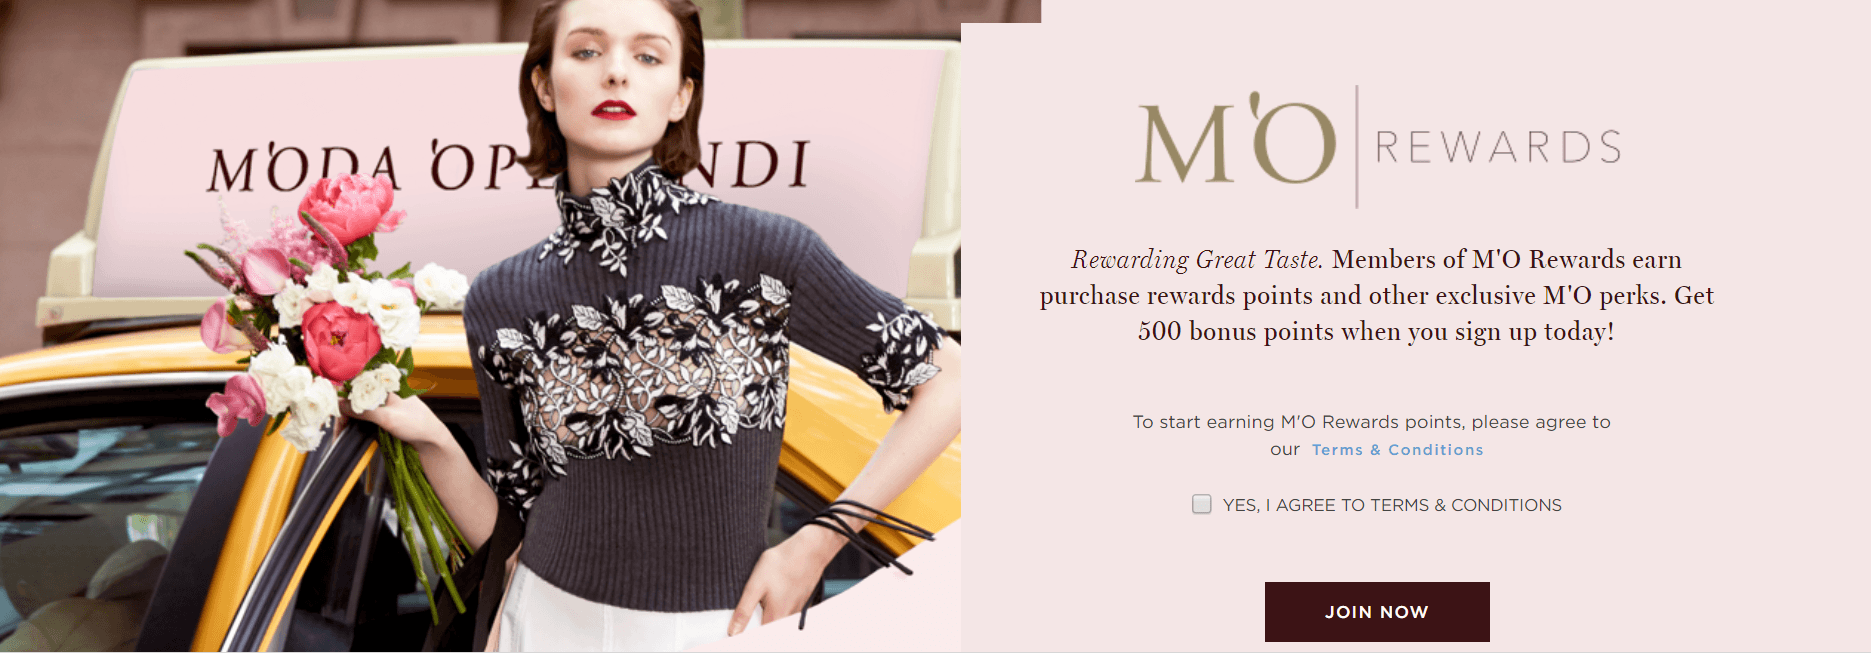 Moda Operandi M'O Rewards fashion loyalty program